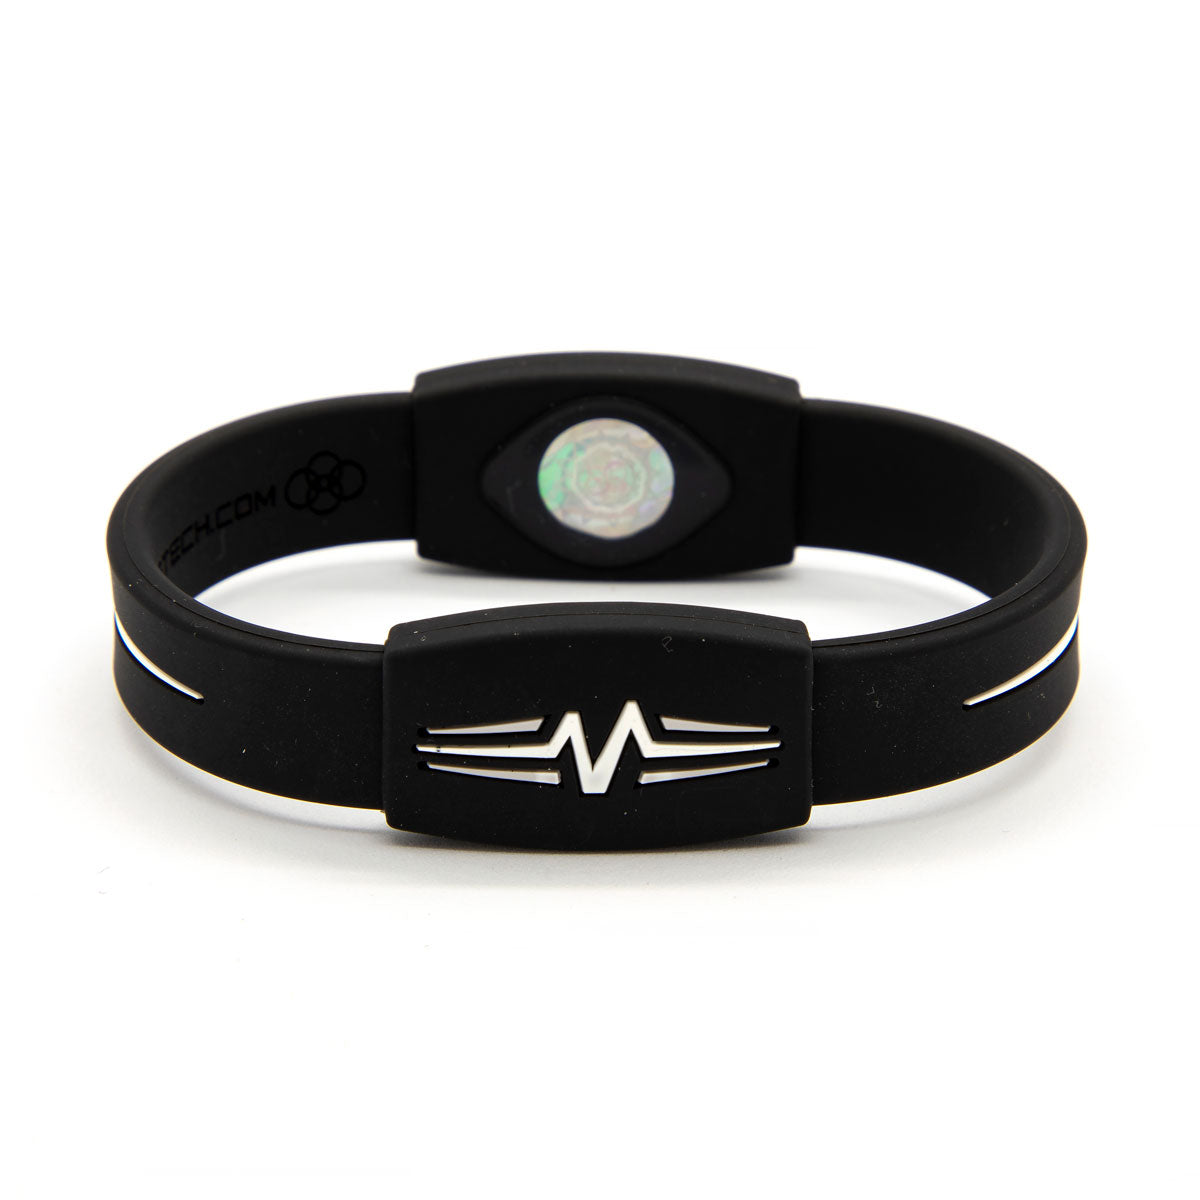 Advantage Elite Double Disc Wristband